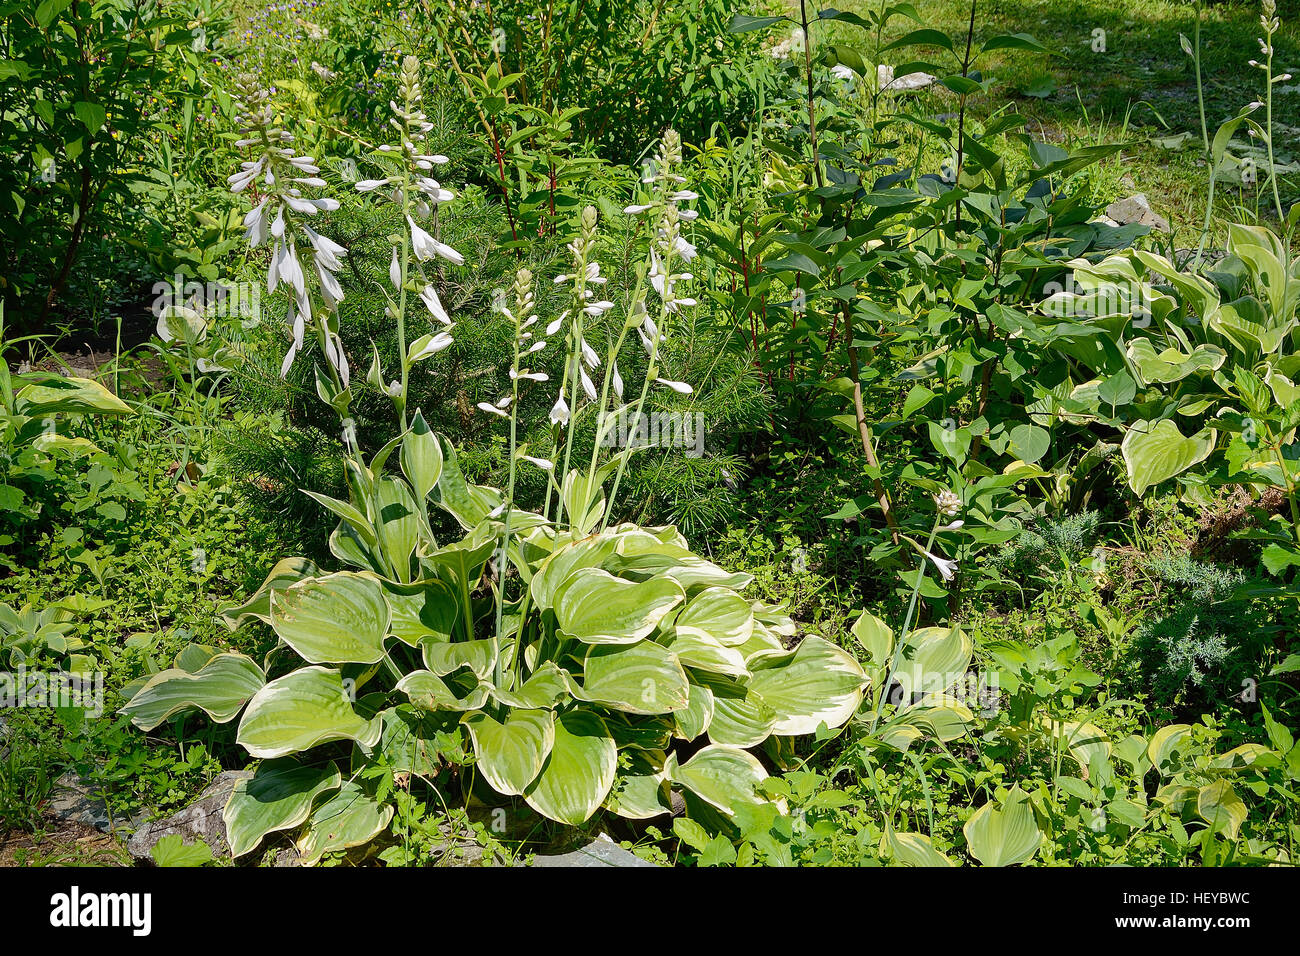 Garden plant hosta with white flowers and decorative leaves stock garden plant hosta with white flowers and decorative leaves mightylinksfo